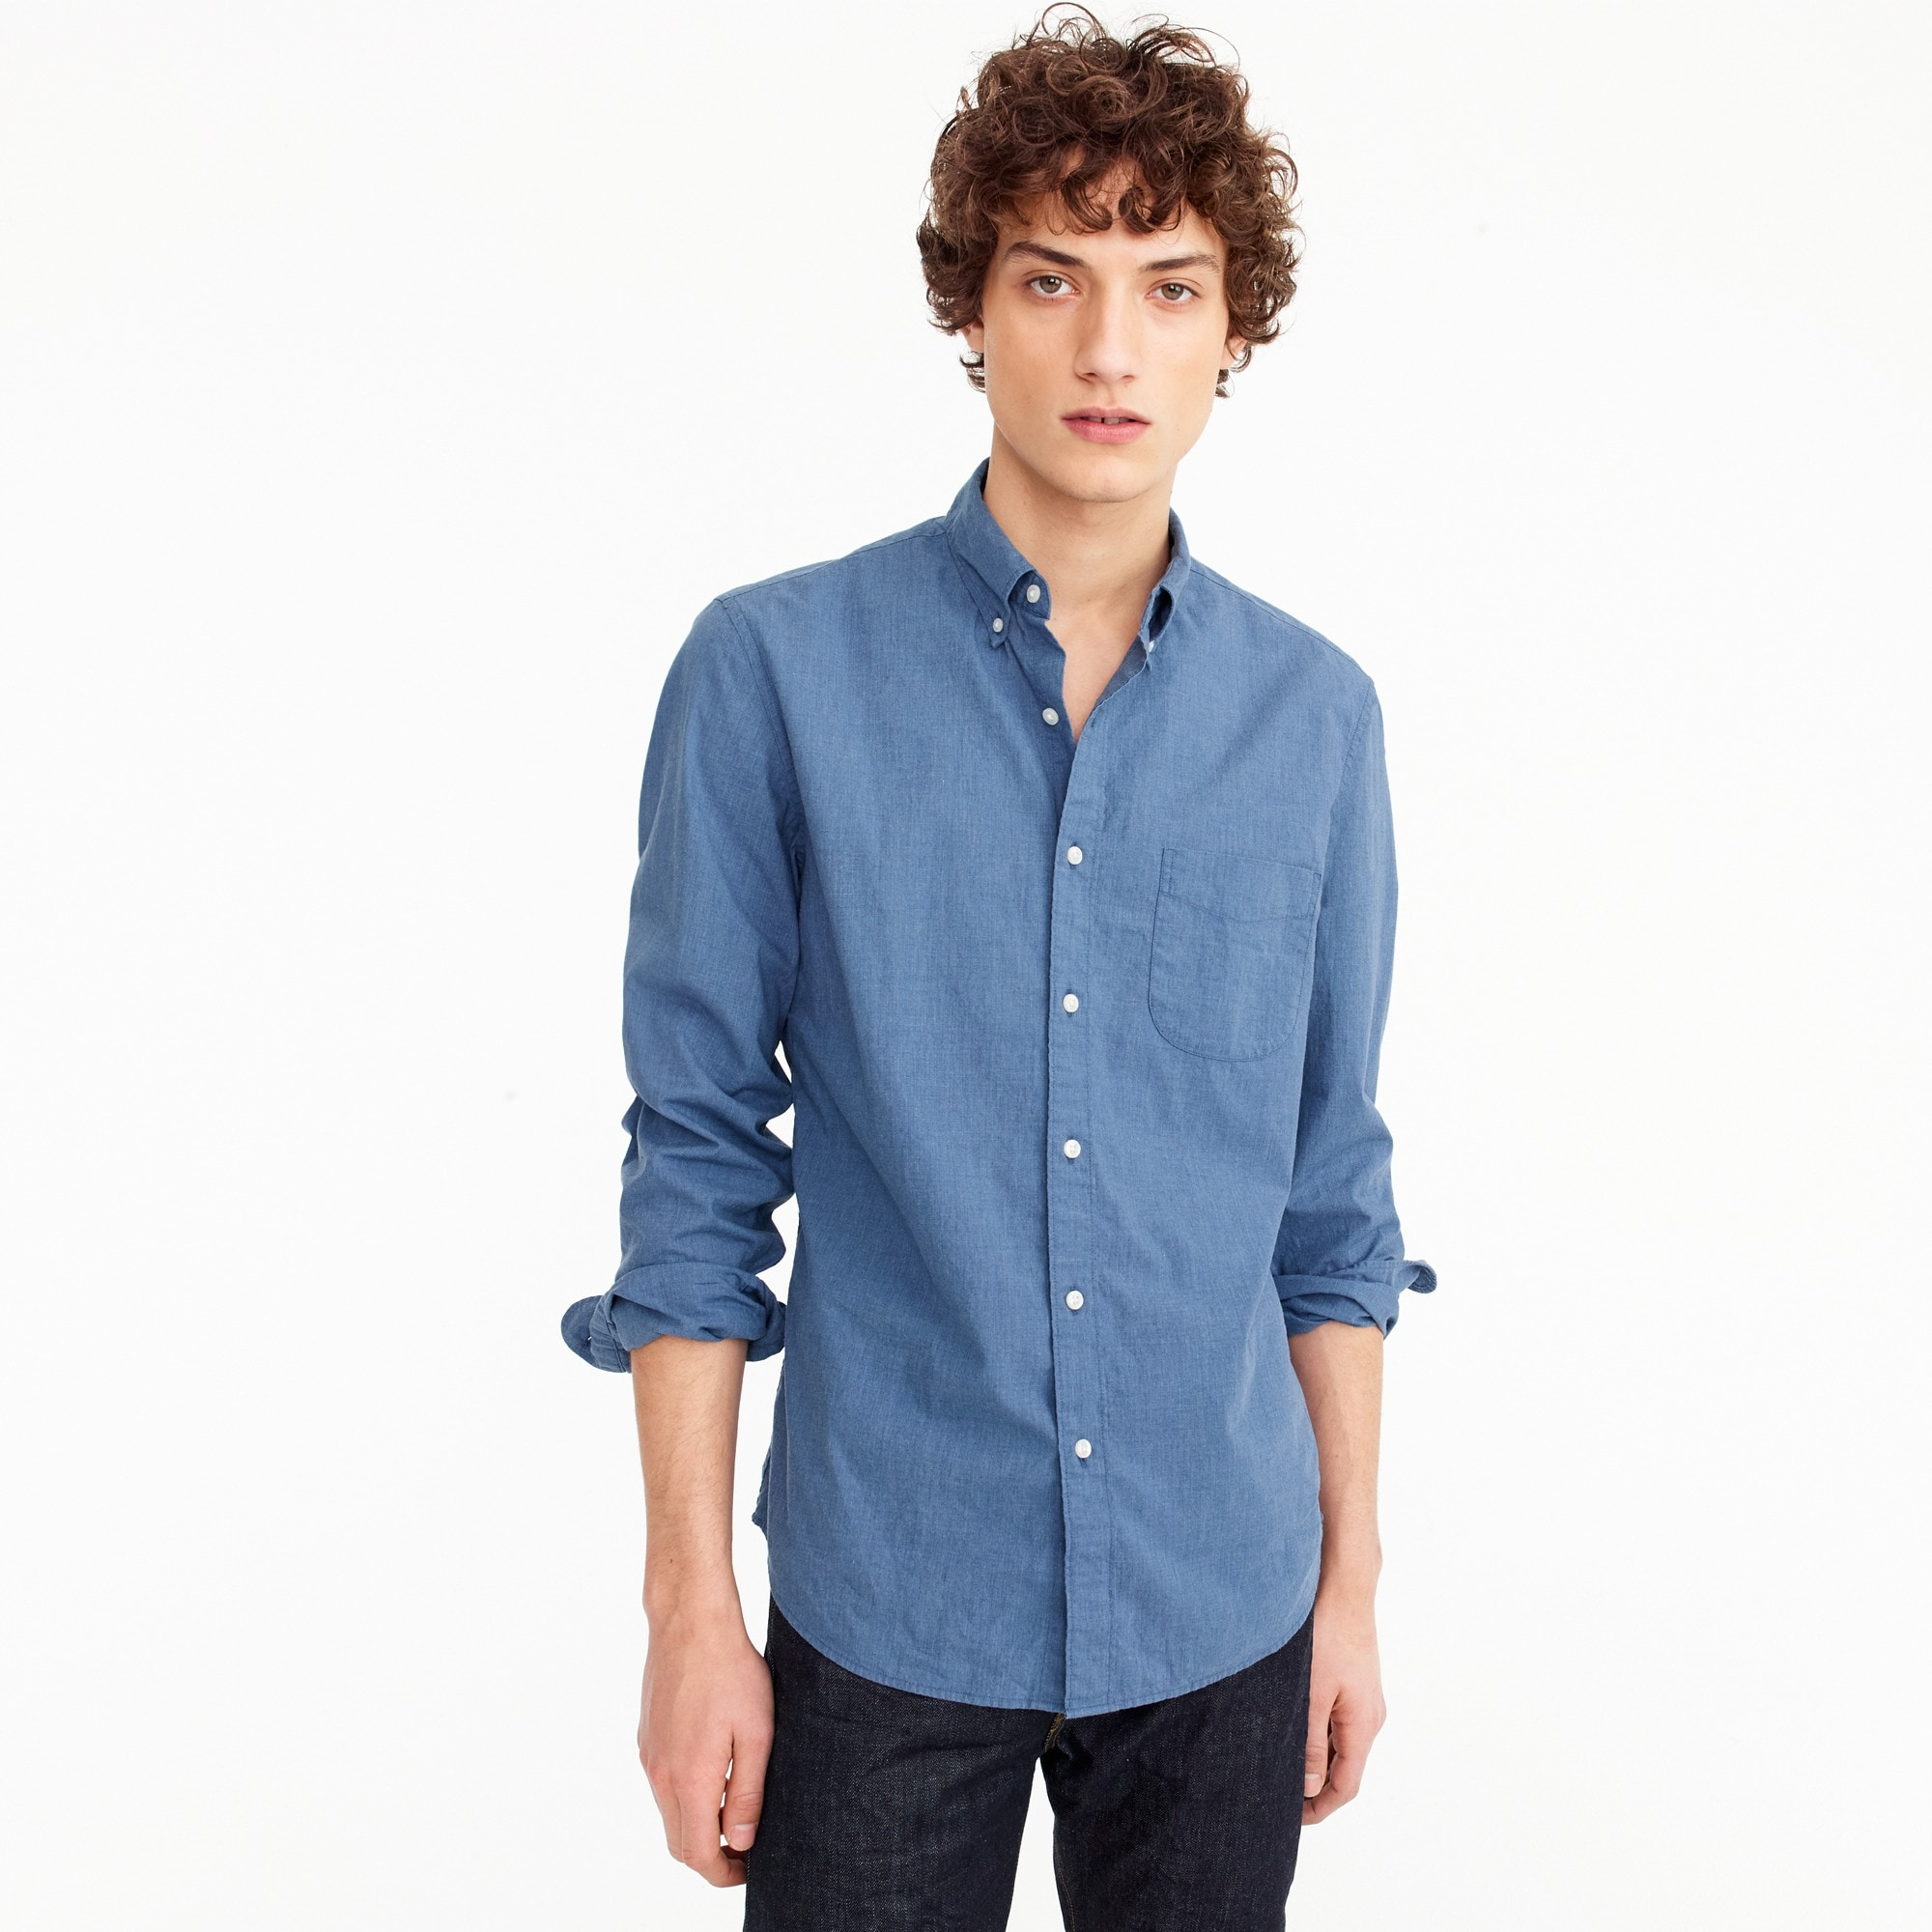 Stretch Secret Wash shirt in blue heather poplin